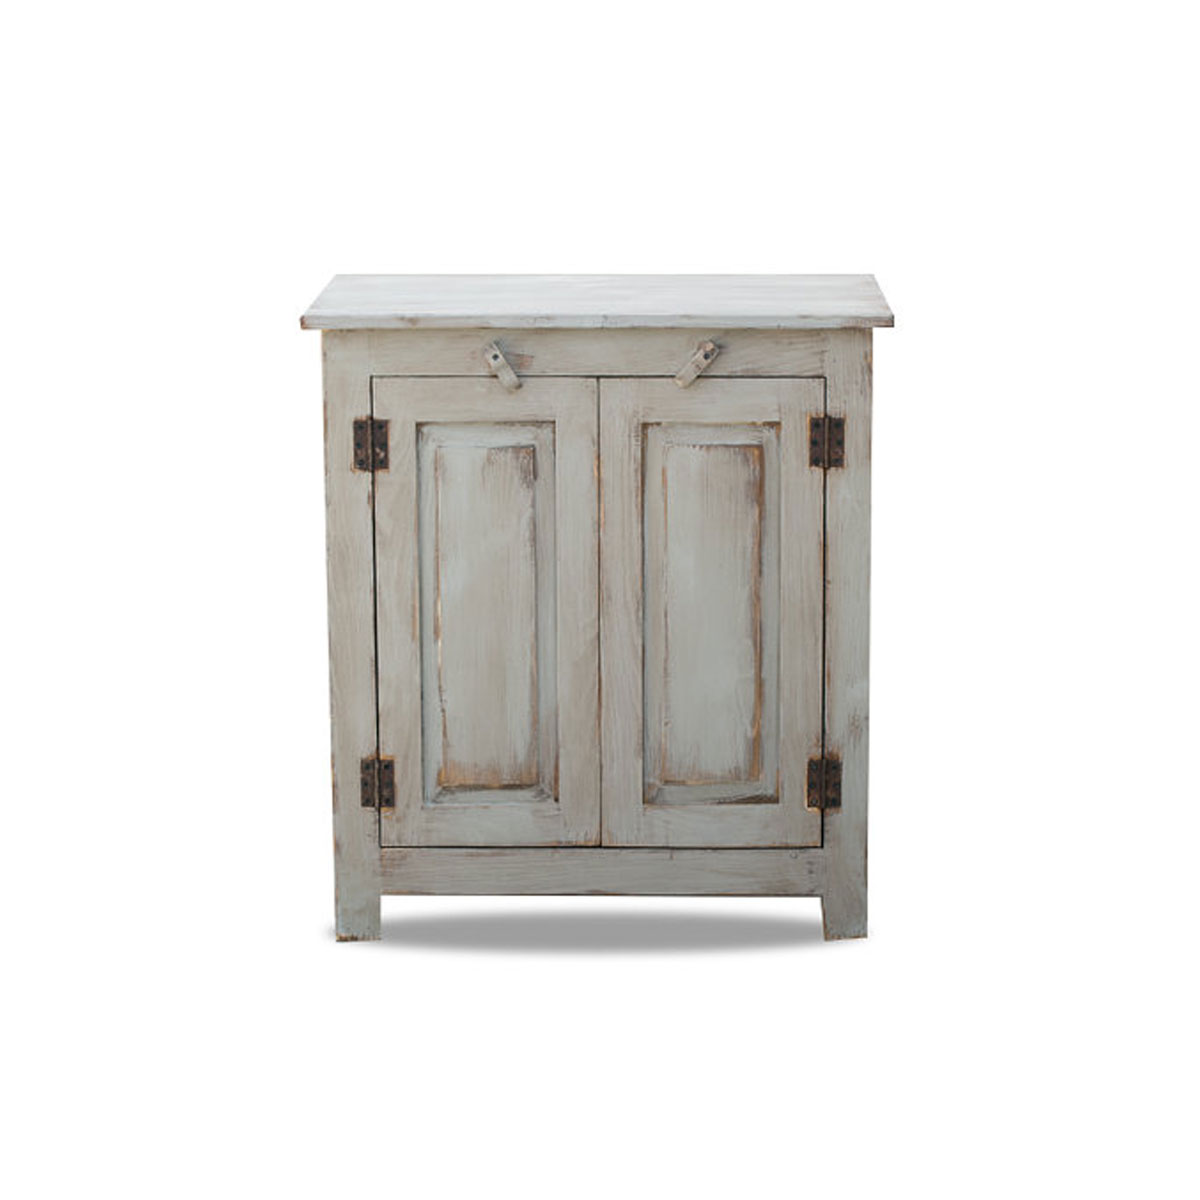 Purchase Rustic Gray Vanity For Small Bathroom Online